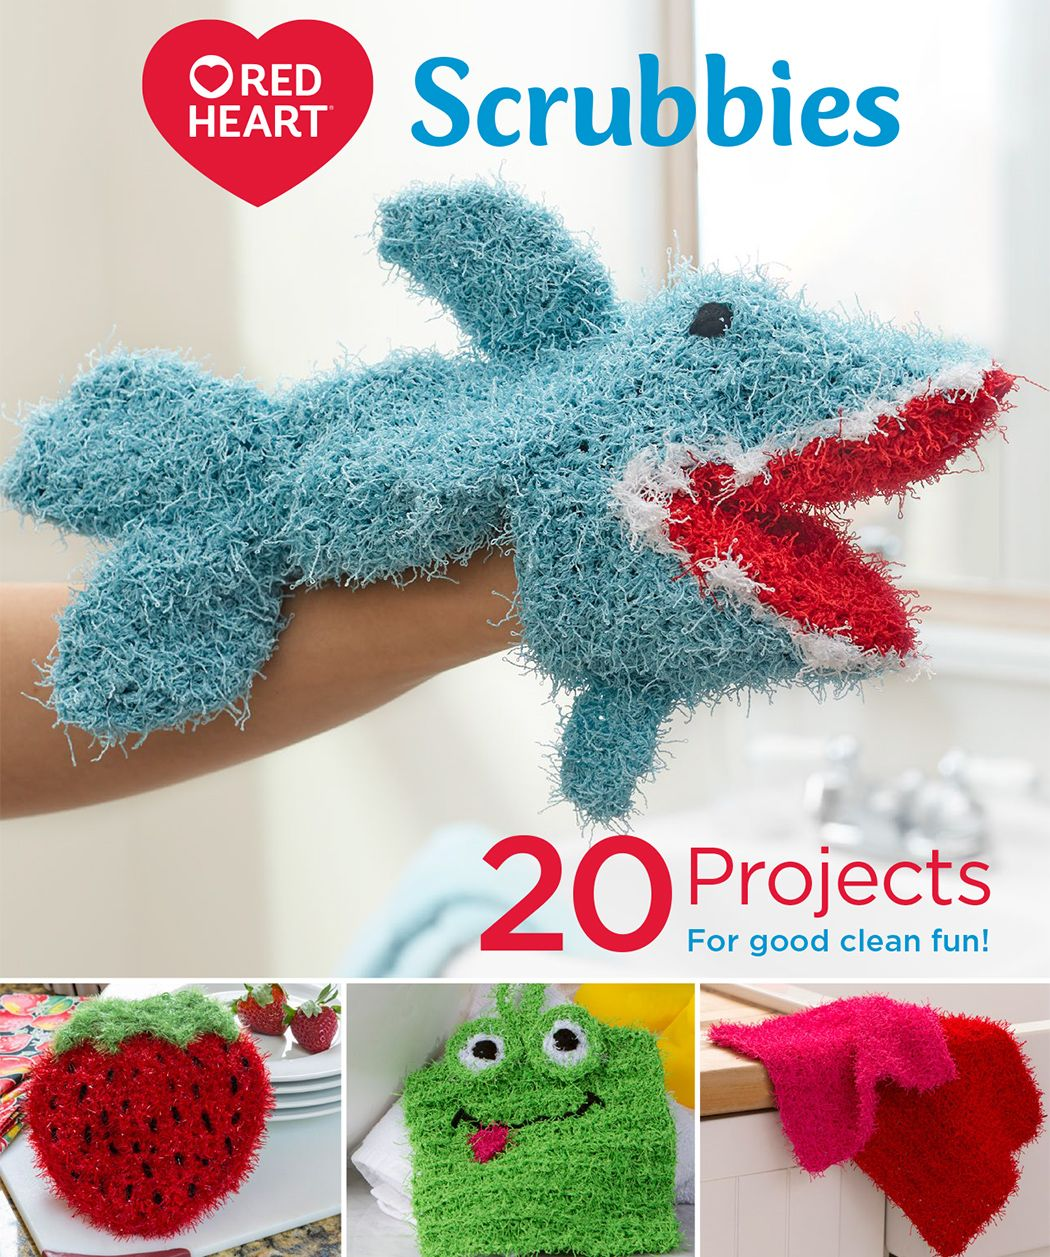 Red Heart Scrubbies 20 Projects For Good Clean Fun Bring Joy To